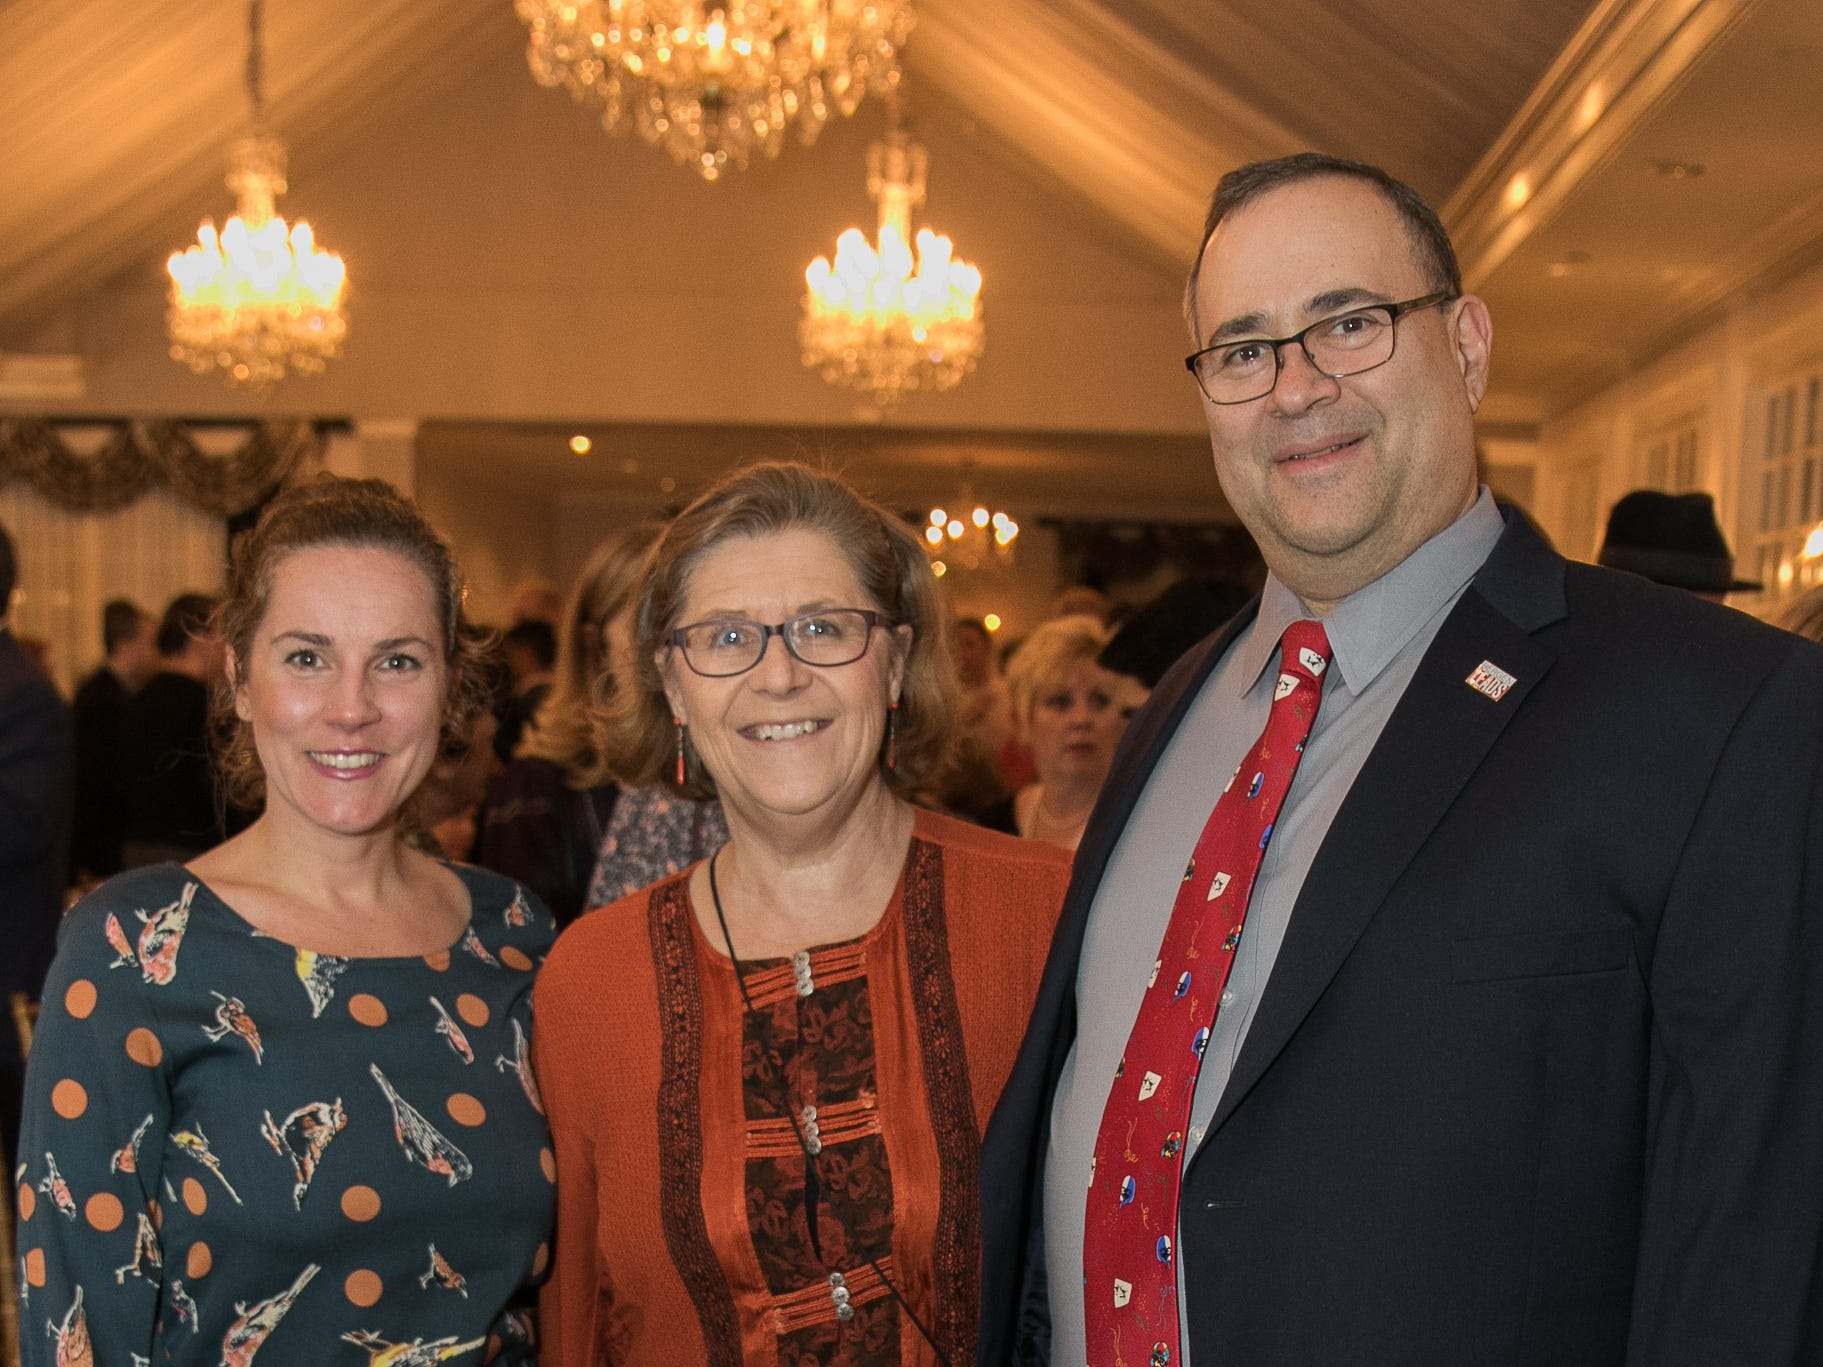 Jennifer Zack, Glenda and David Haas. The Bergen Volunteer Center celebrated its 10th anniversary of the Bergen LEADS program at The Hearts of Gold Dinner and Auction at the Stony Hill Inn in Hackensack. 11/08/2018